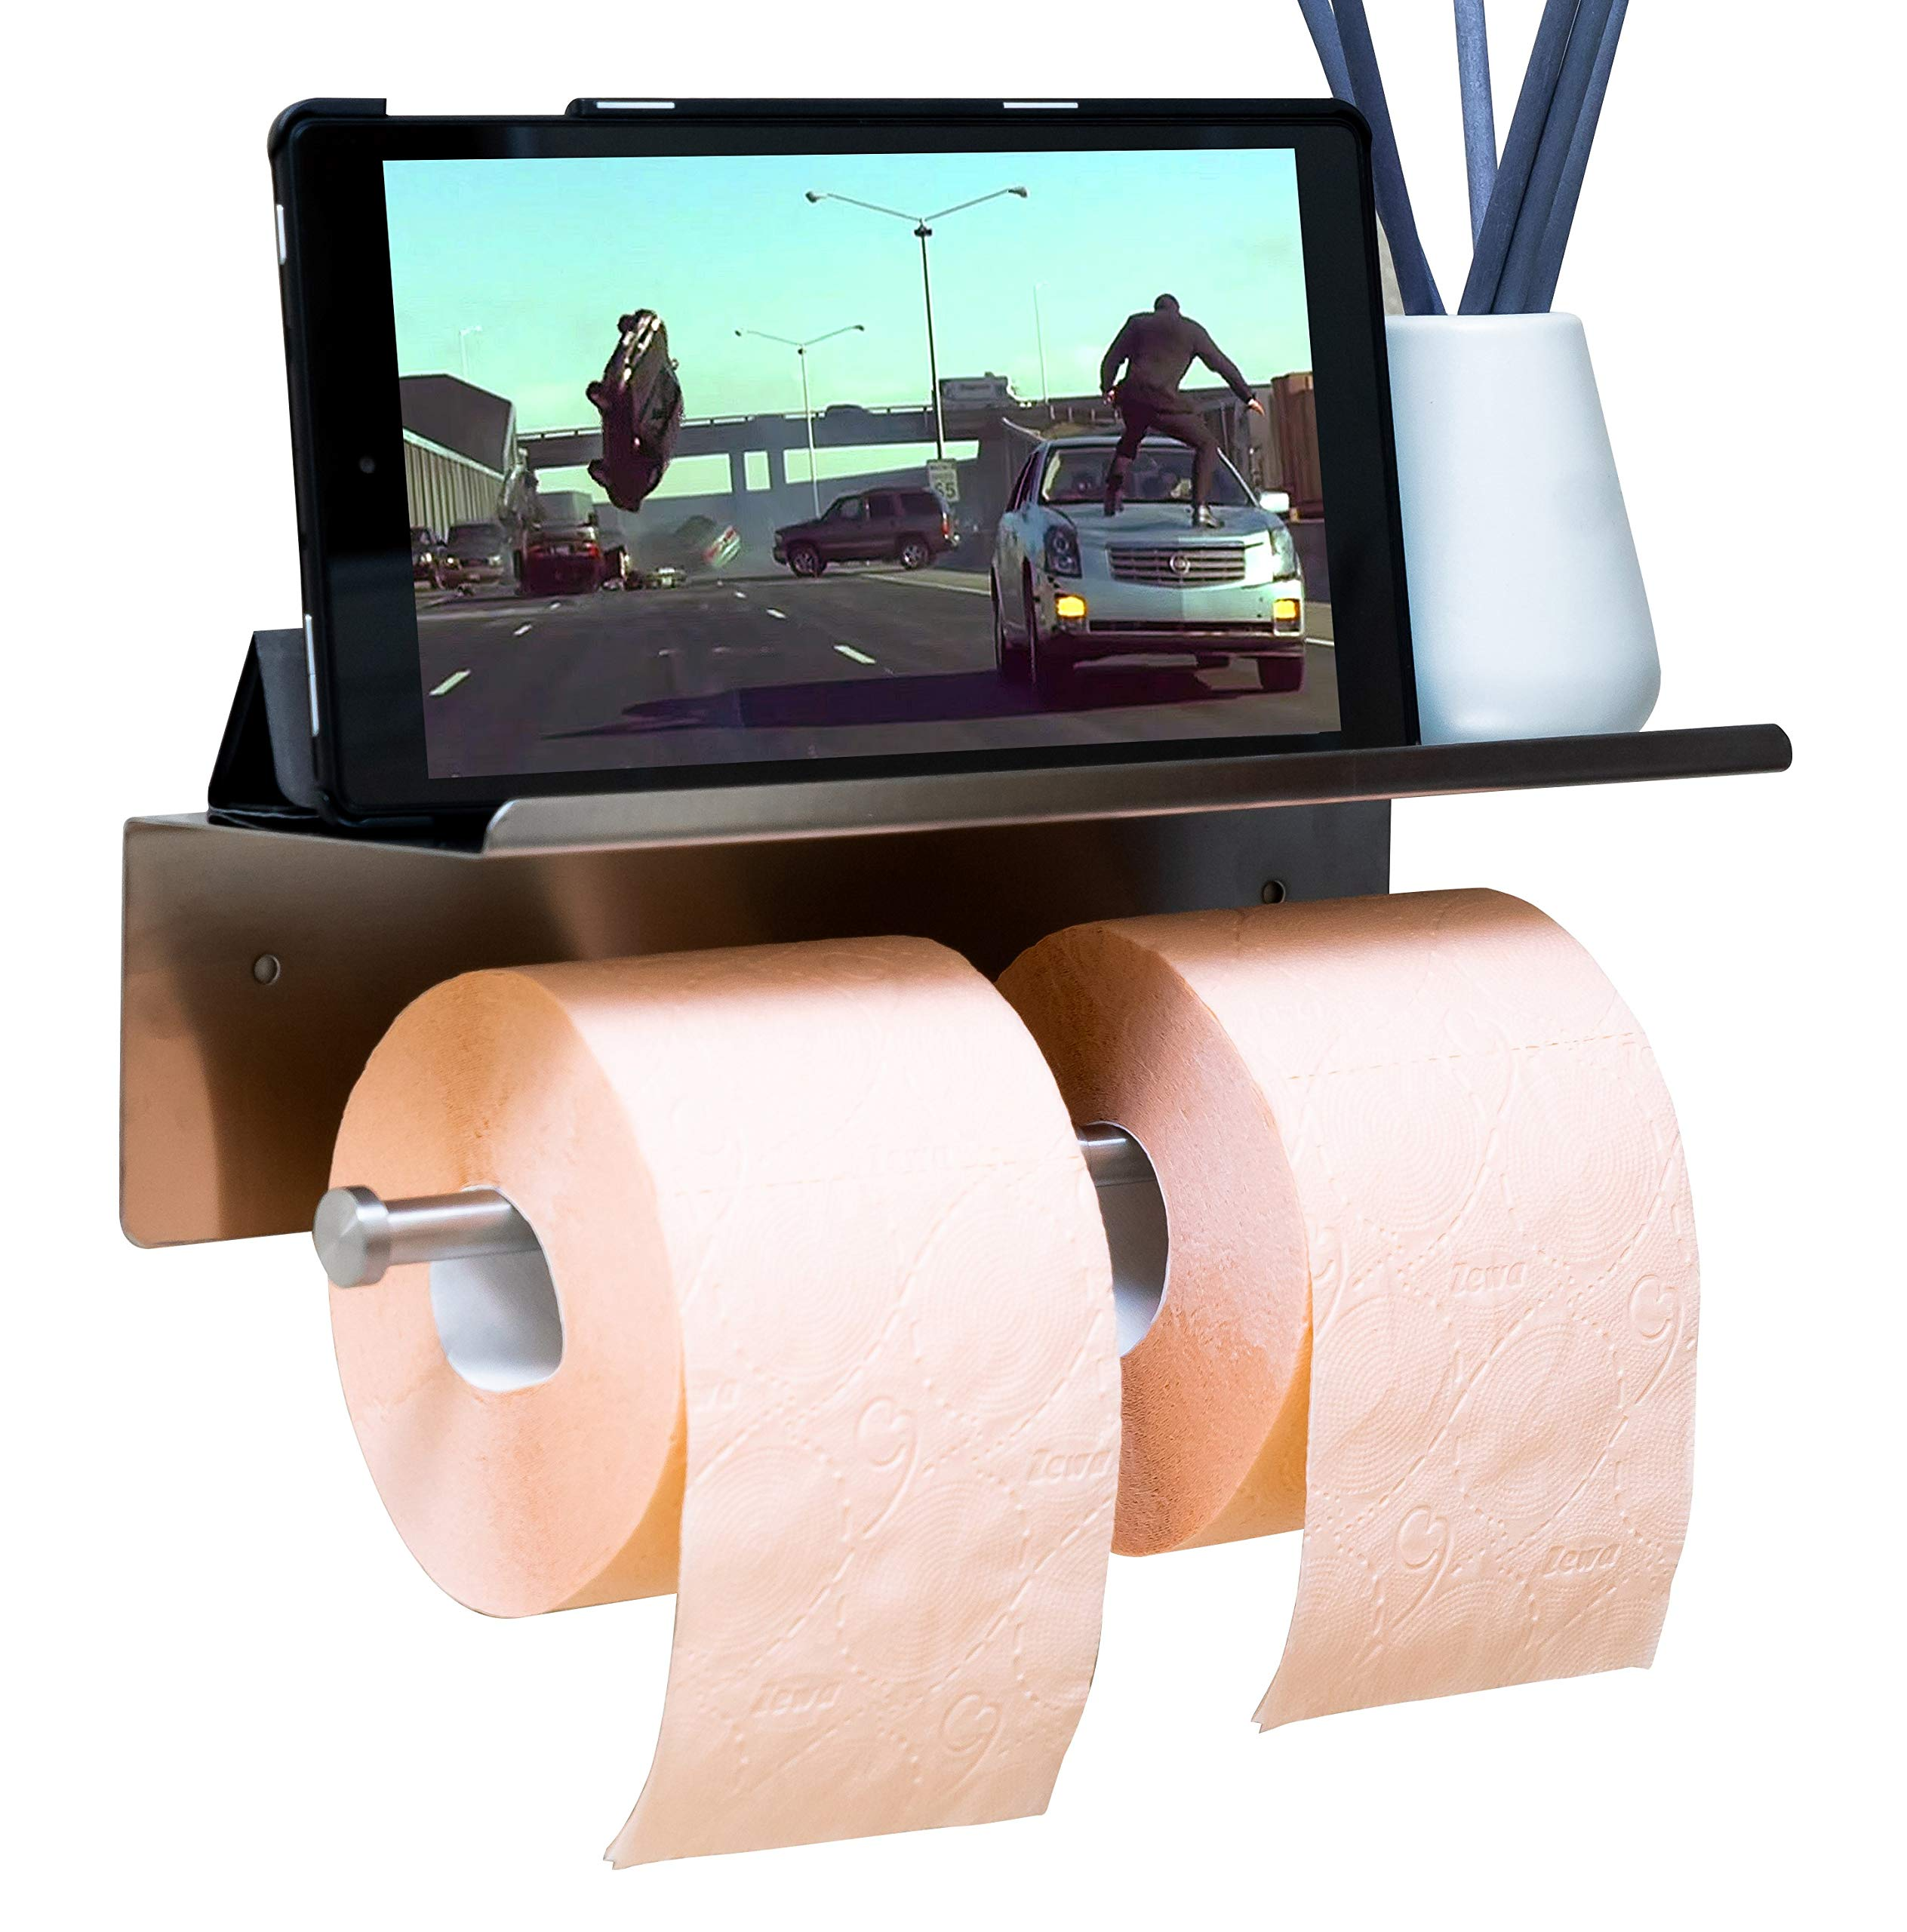 Double Toilet Paper Holder with Shelf - Wall Mounted-Brushed Nickel Self Adhesive Toilet Paper Holder with Phone Storage Rack, Bathroom accessories - Baby Wipes, Soap, Towel & Toothbrush Tray SS 304